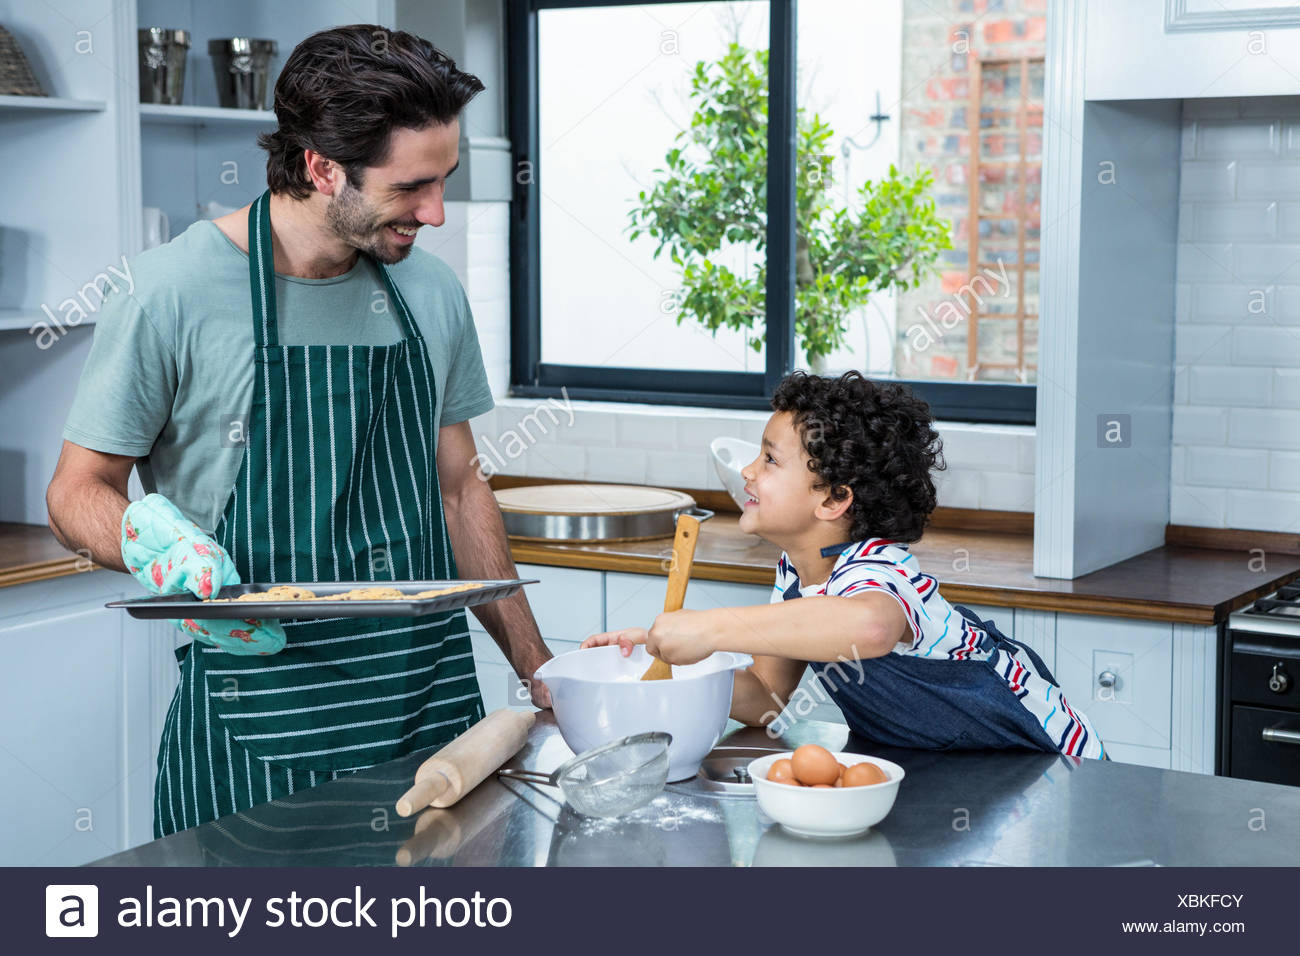 Smiling Father Son Cooking Biscuits Stock Photos & Smiling Father ...